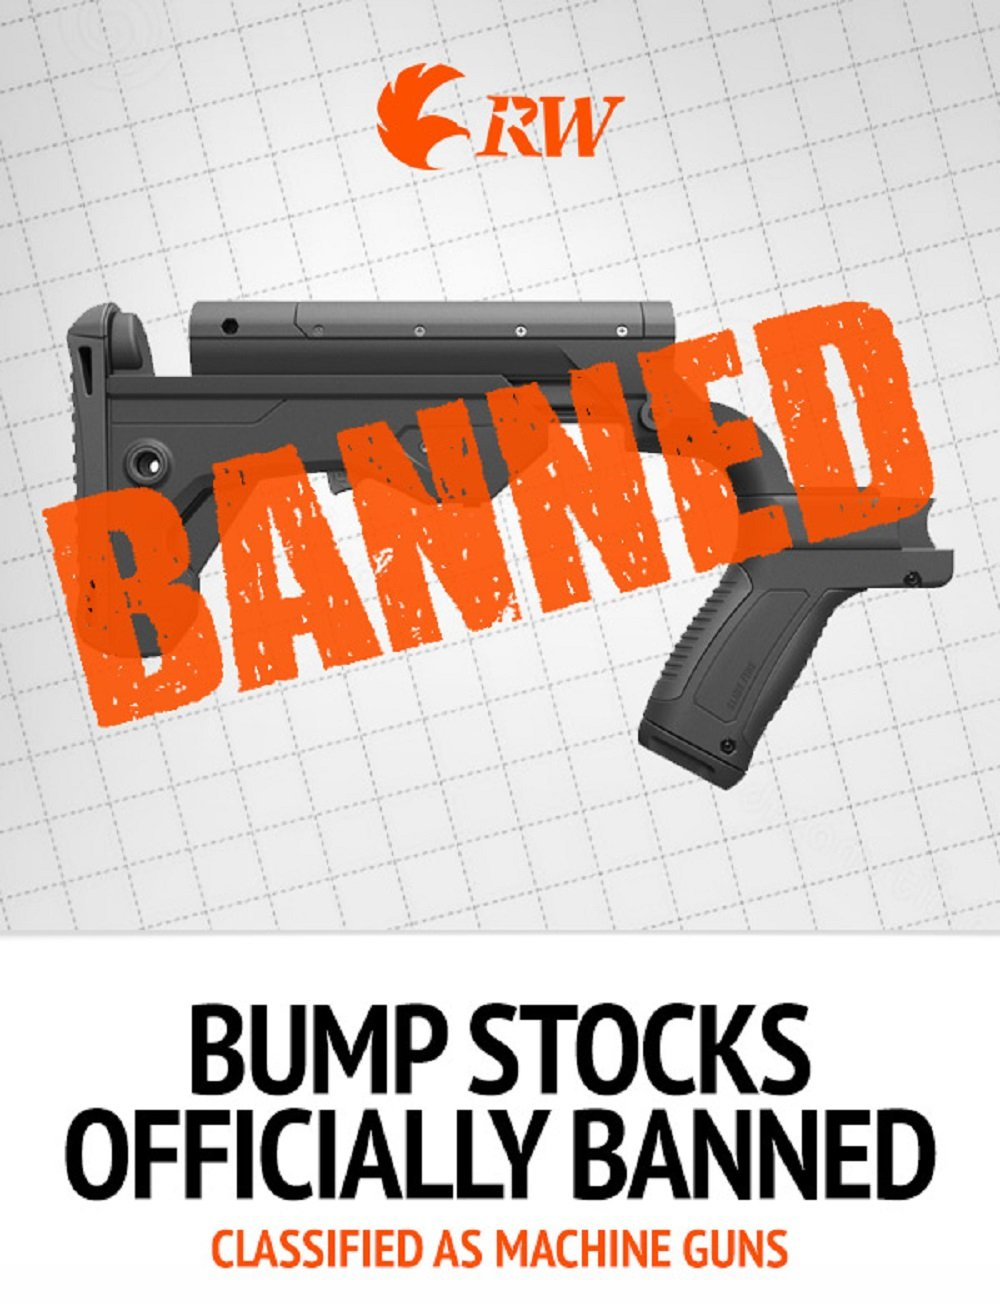 Will There Be Life After Bump Stocks?